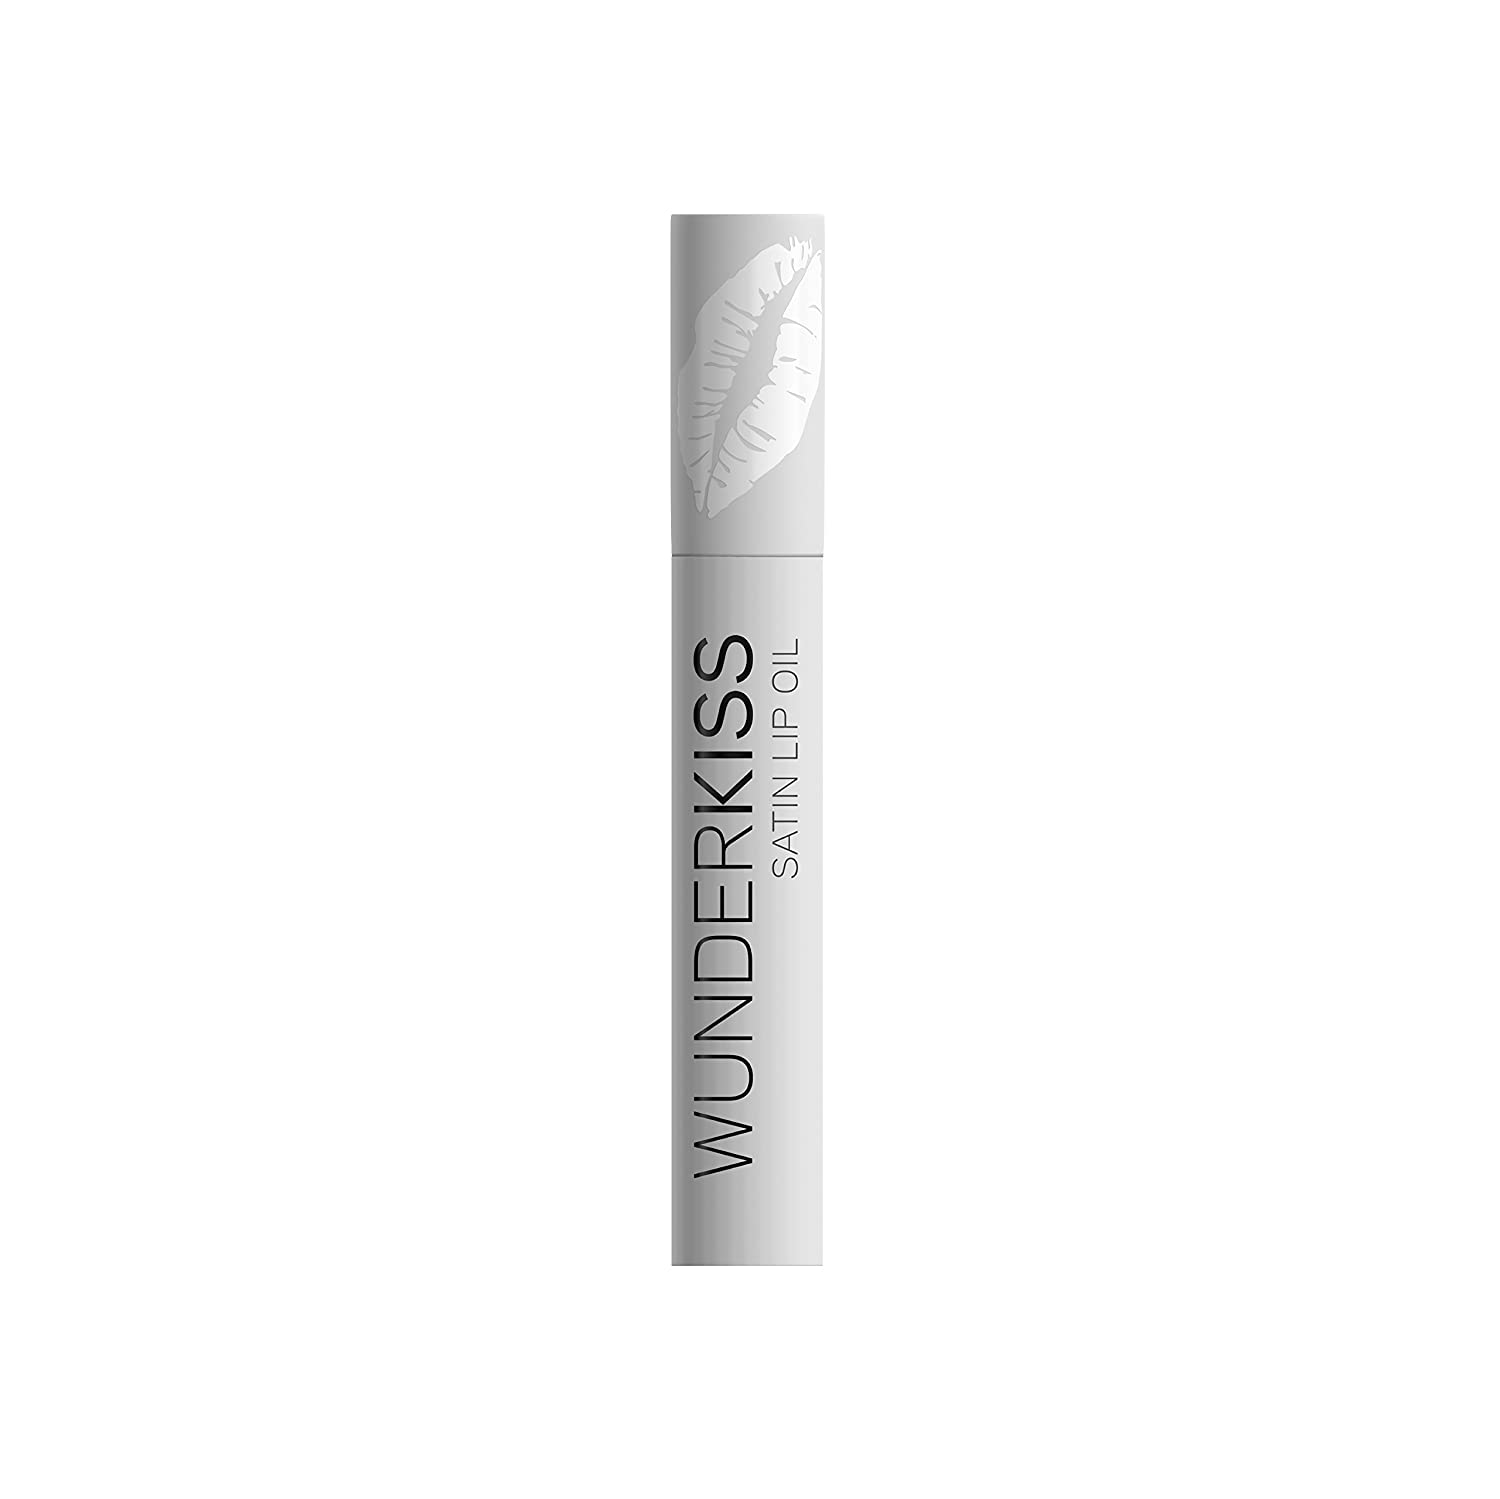 WUNDER2 Wunderkiss Satin Lip Oil, 0.13 Fluid Ounce KF Beauty WK_SLO